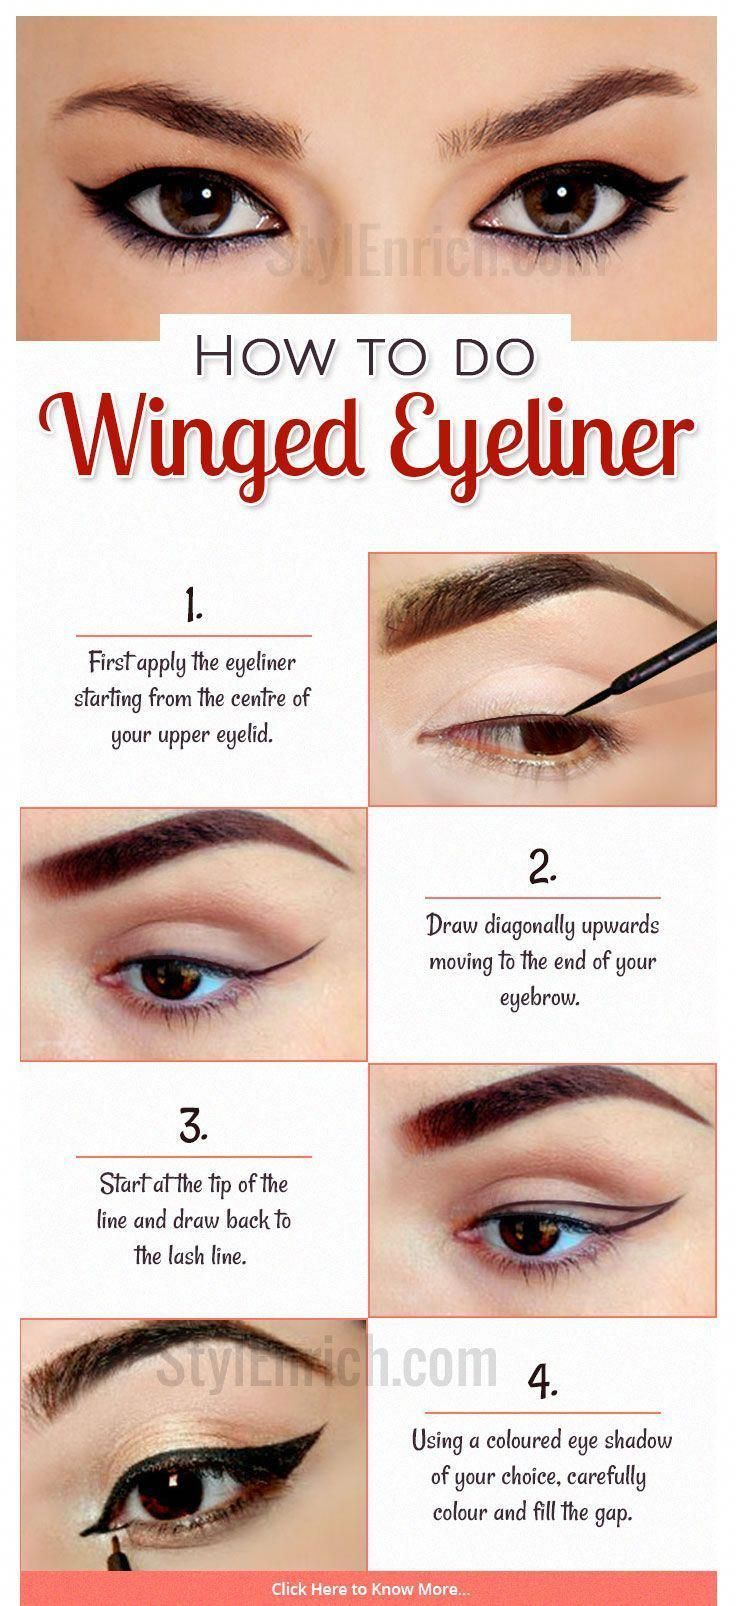 7 Simple Skin Care Tips Everyone Can Use Eyeliner for